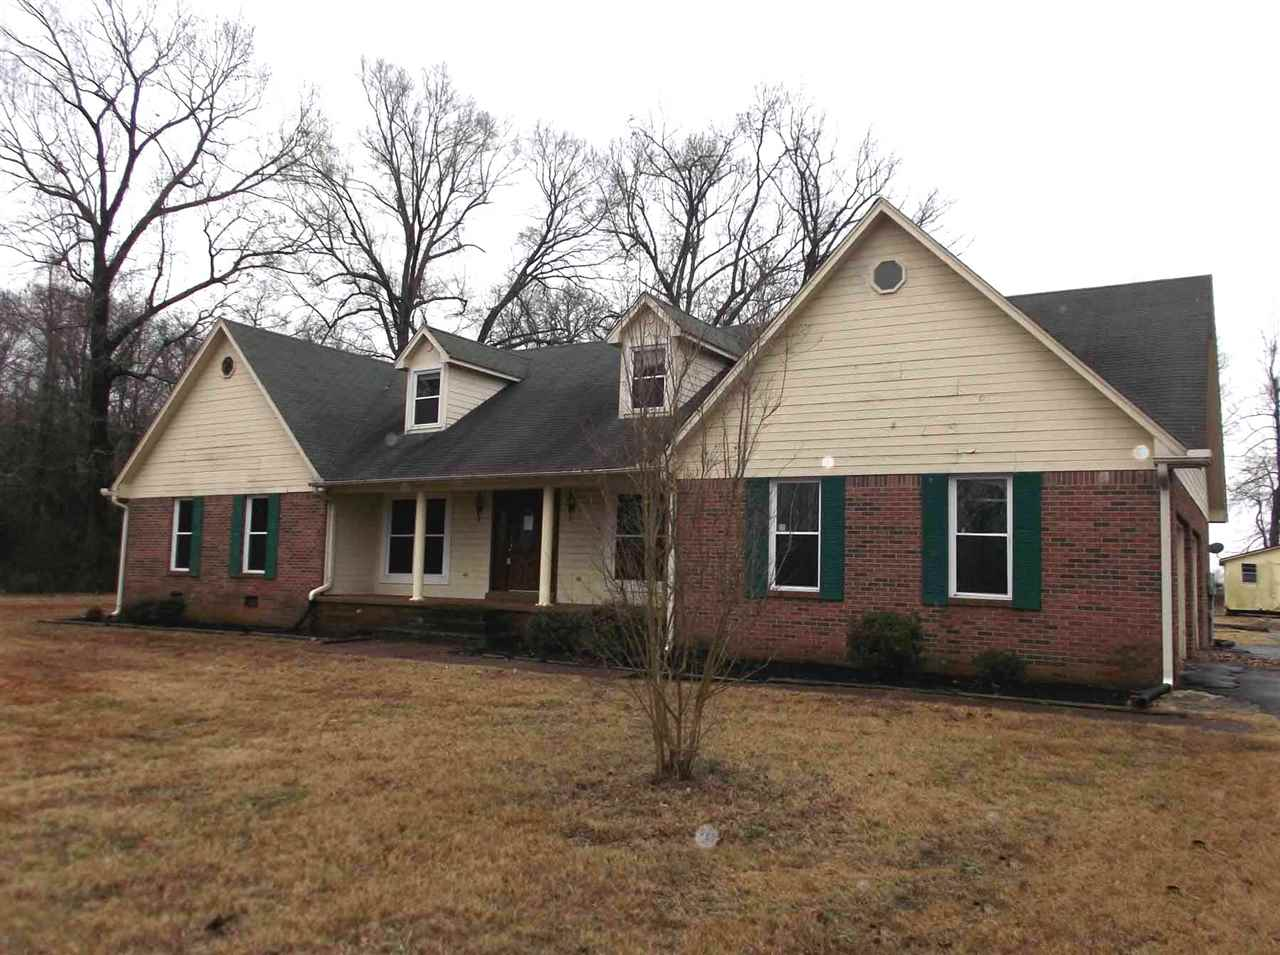 1197 Lower Brownsville Rd,Jackson,Tennessee 38301,3 Bedrooms Bedrooms,3 BathroomsBathrooms,Residential,1197 Lower Brownsville Rd,181063